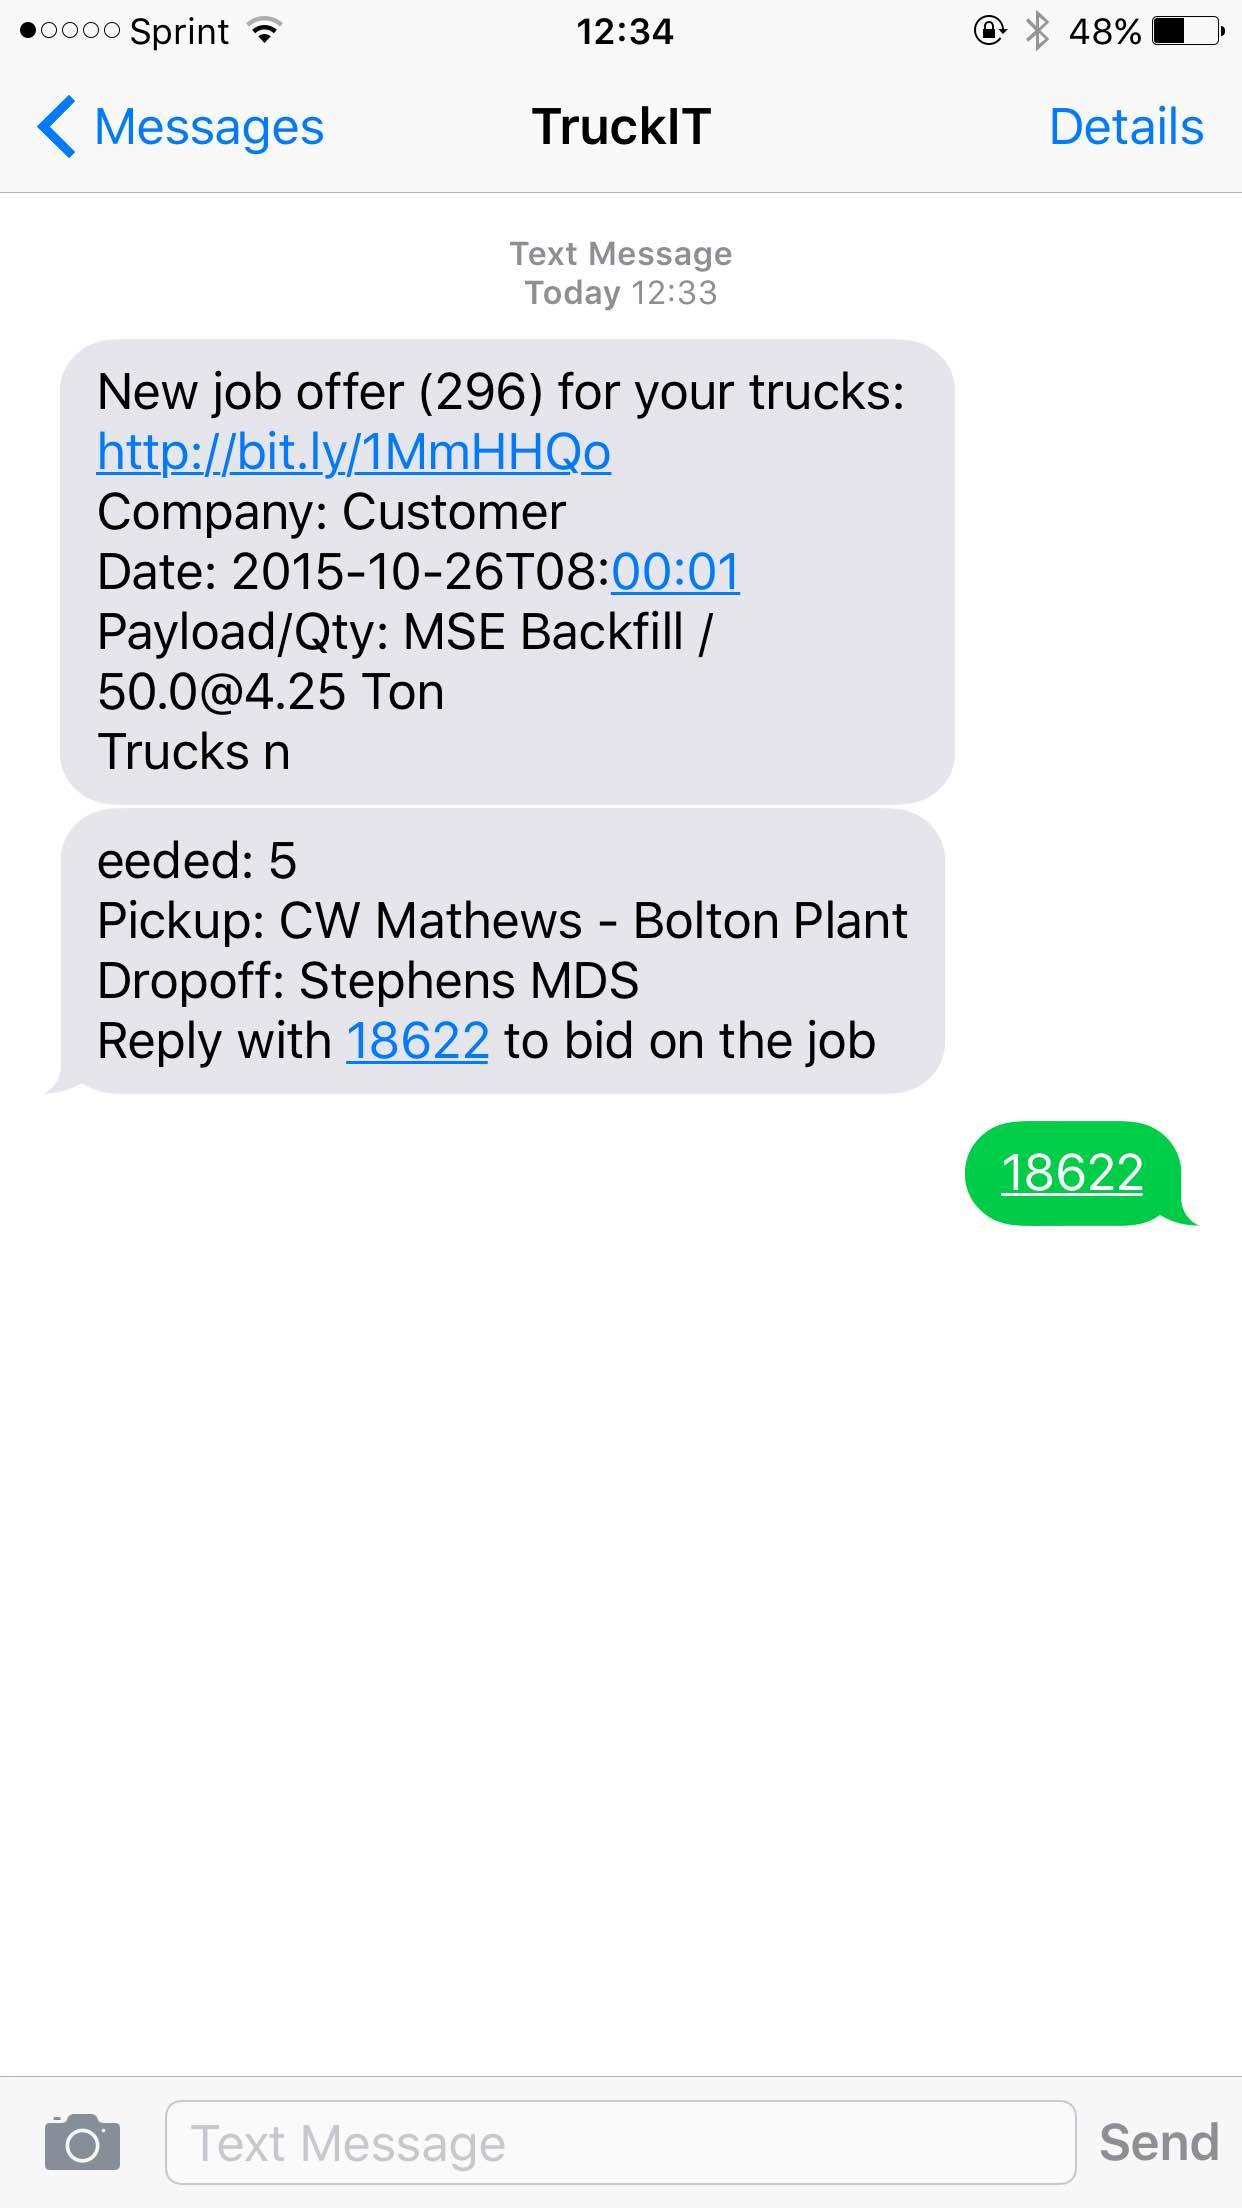 truckit how to bid on a job text after replying the unique code the website responds